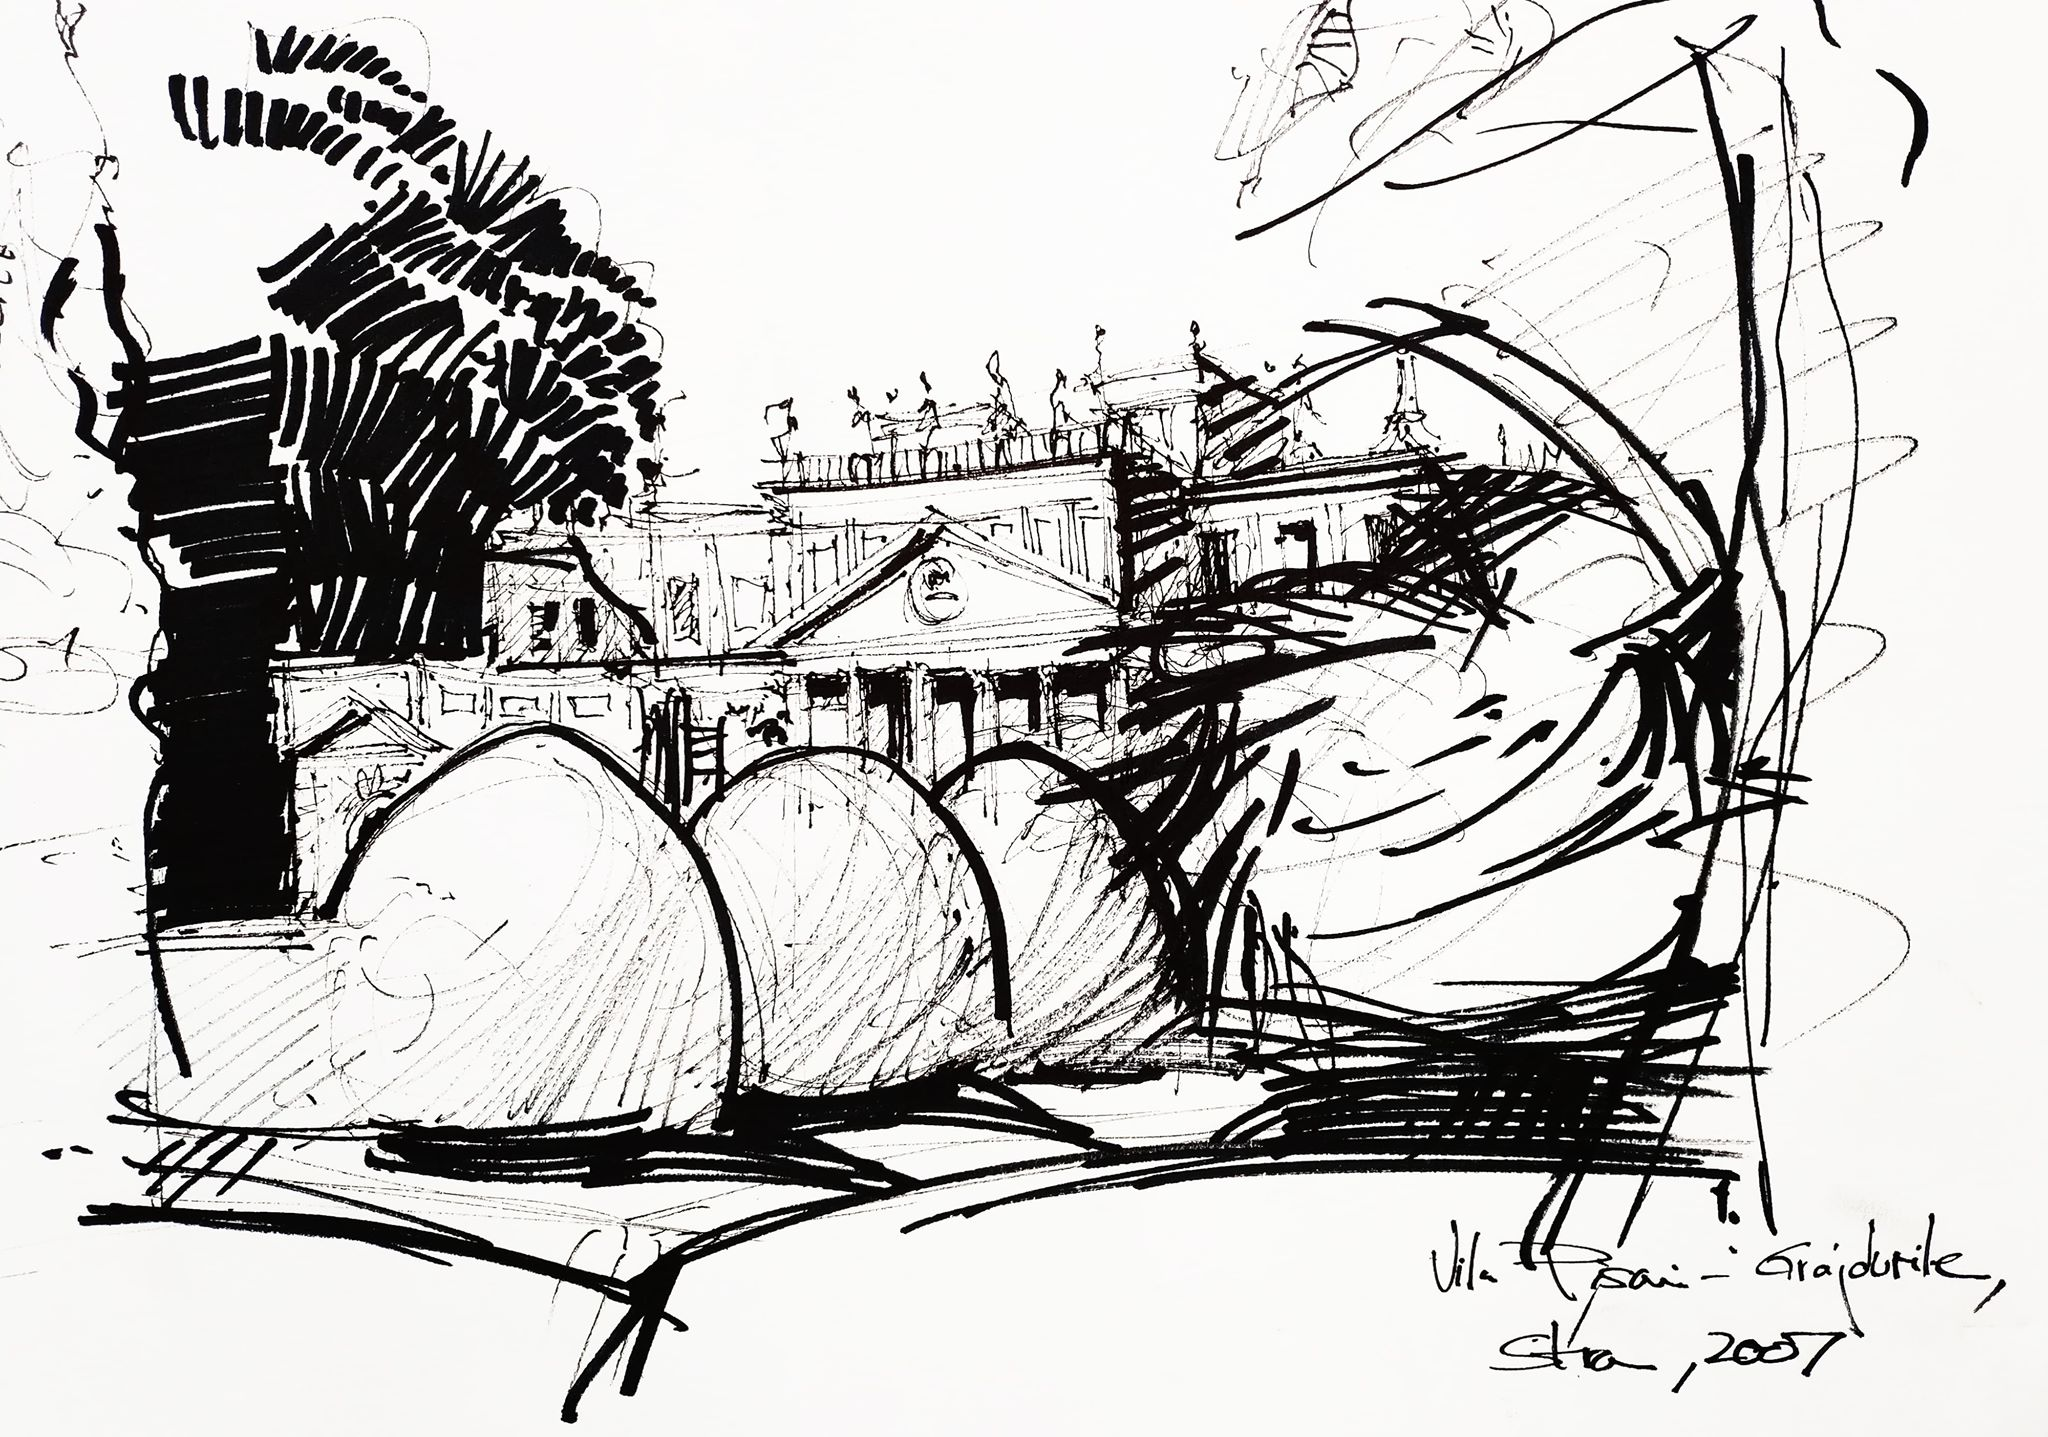 Vila Pisani – Stables, 21x29cm ink on paper